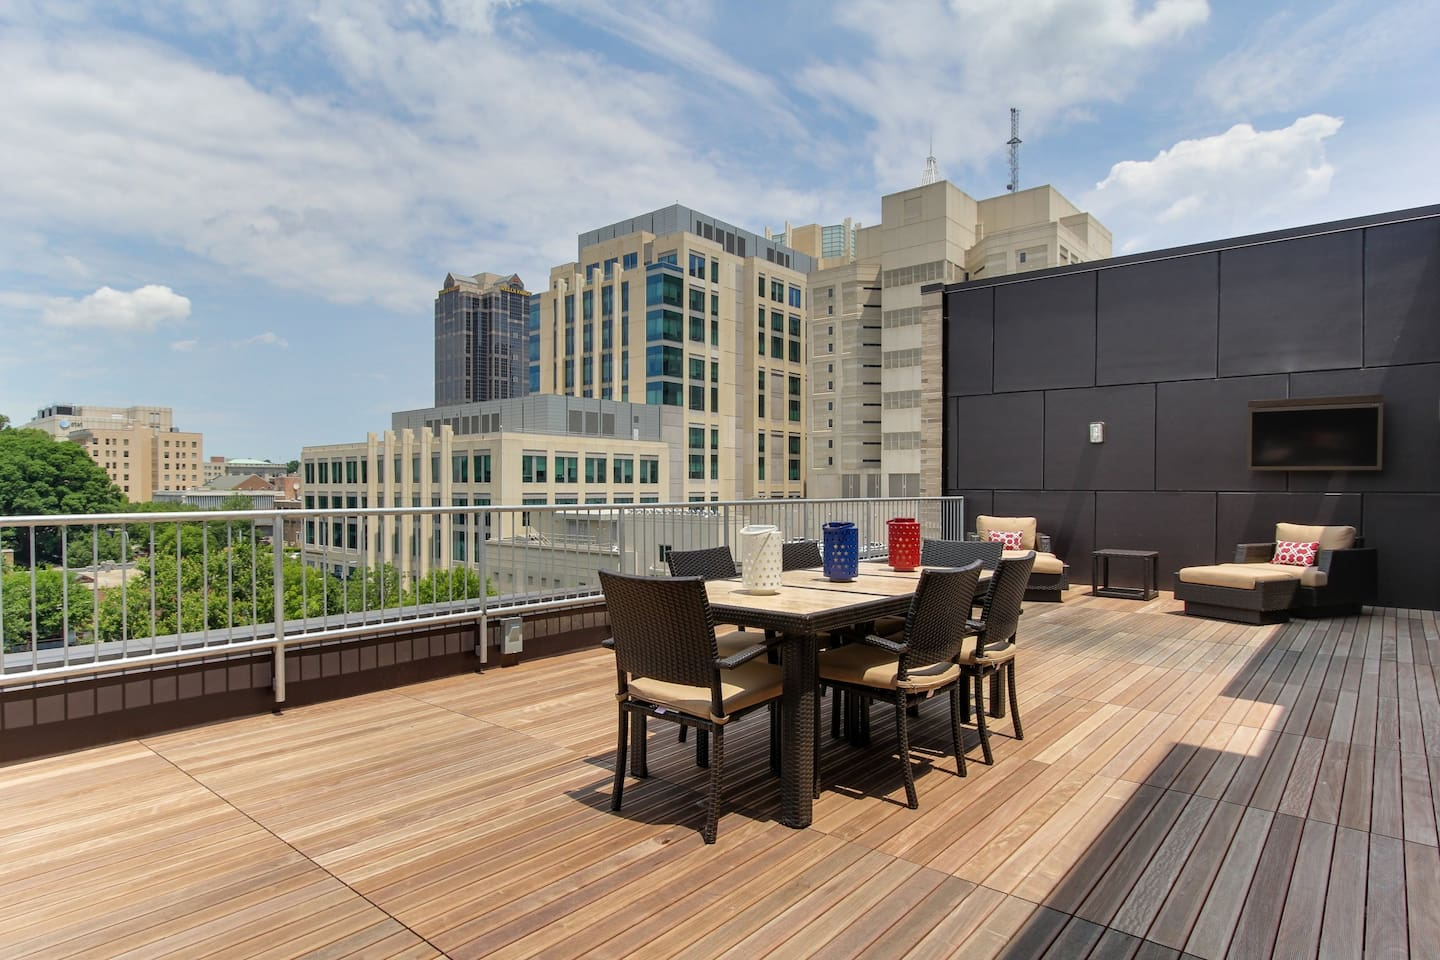 7th floor rooftop patio, now with stainless steel outdoor grills (shared space)